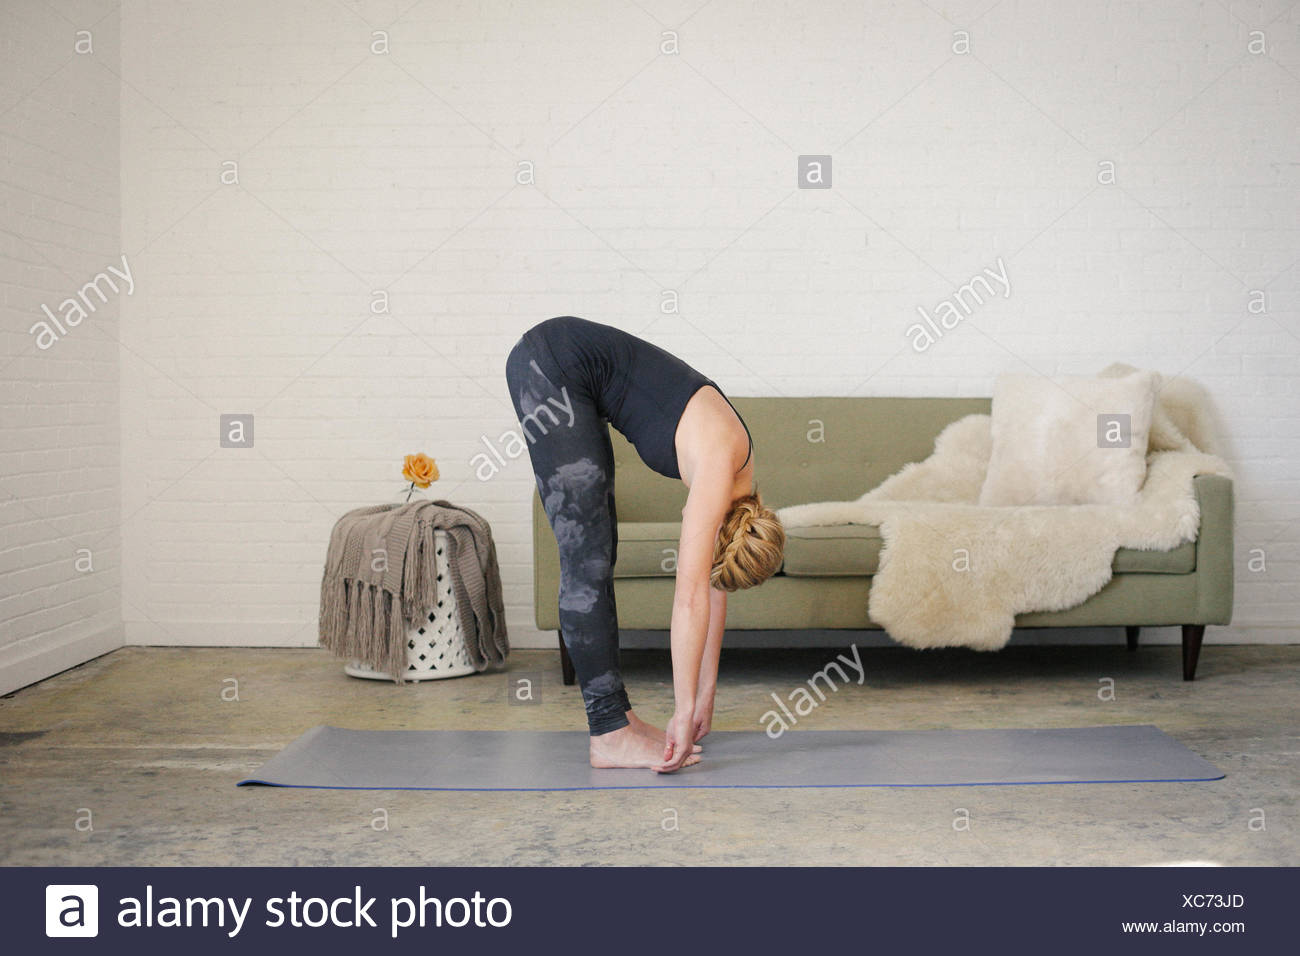 A blonde woman standing on a yoga mat in a room, doing yoga, bending down, touching her toes with her hands. - Stock Image